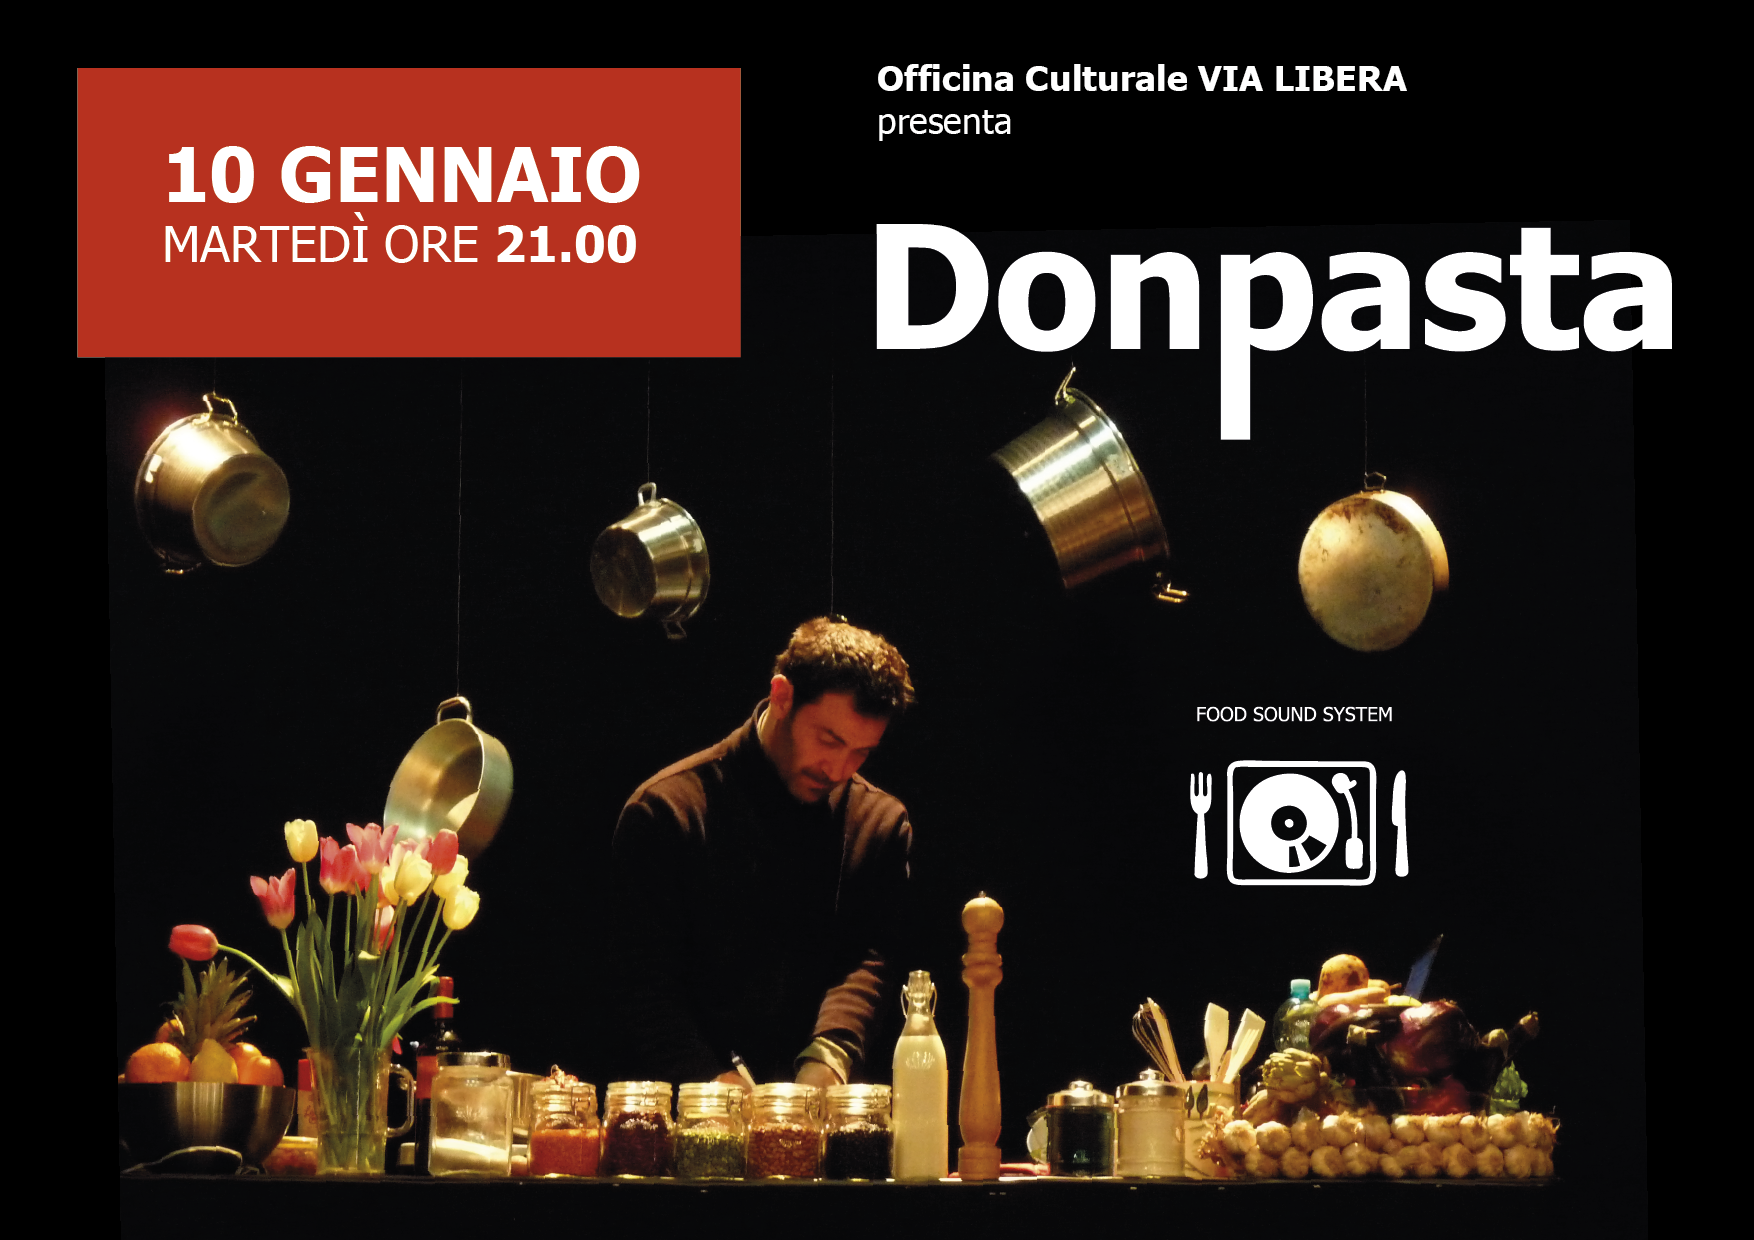 Donpasta..food sound system